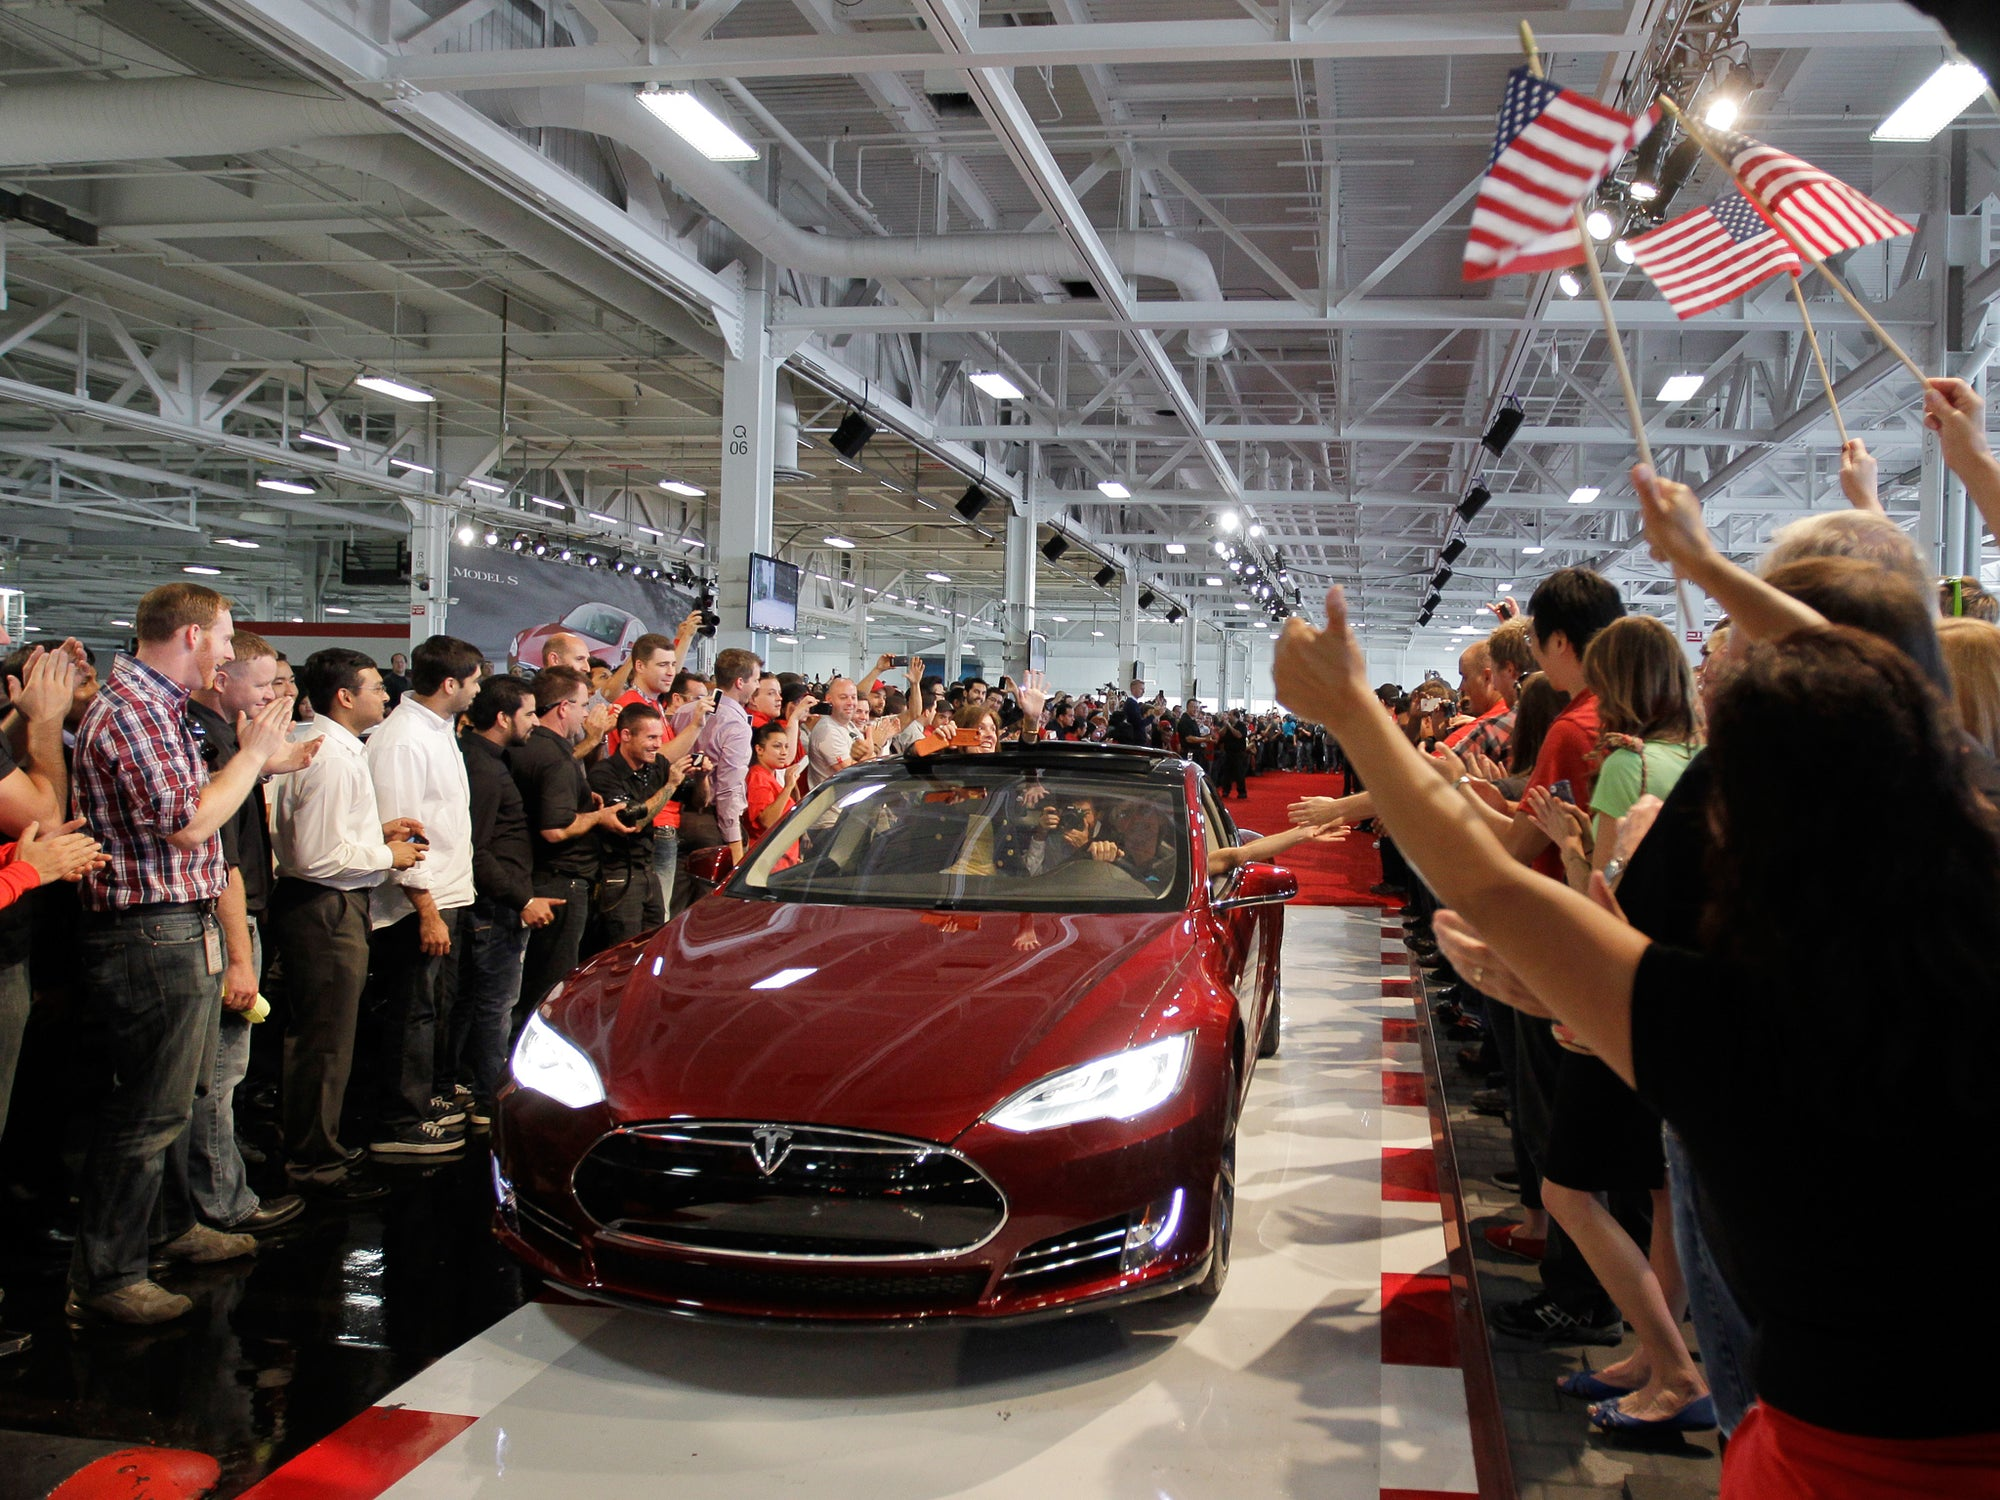 A bit about Tesla's recent successes